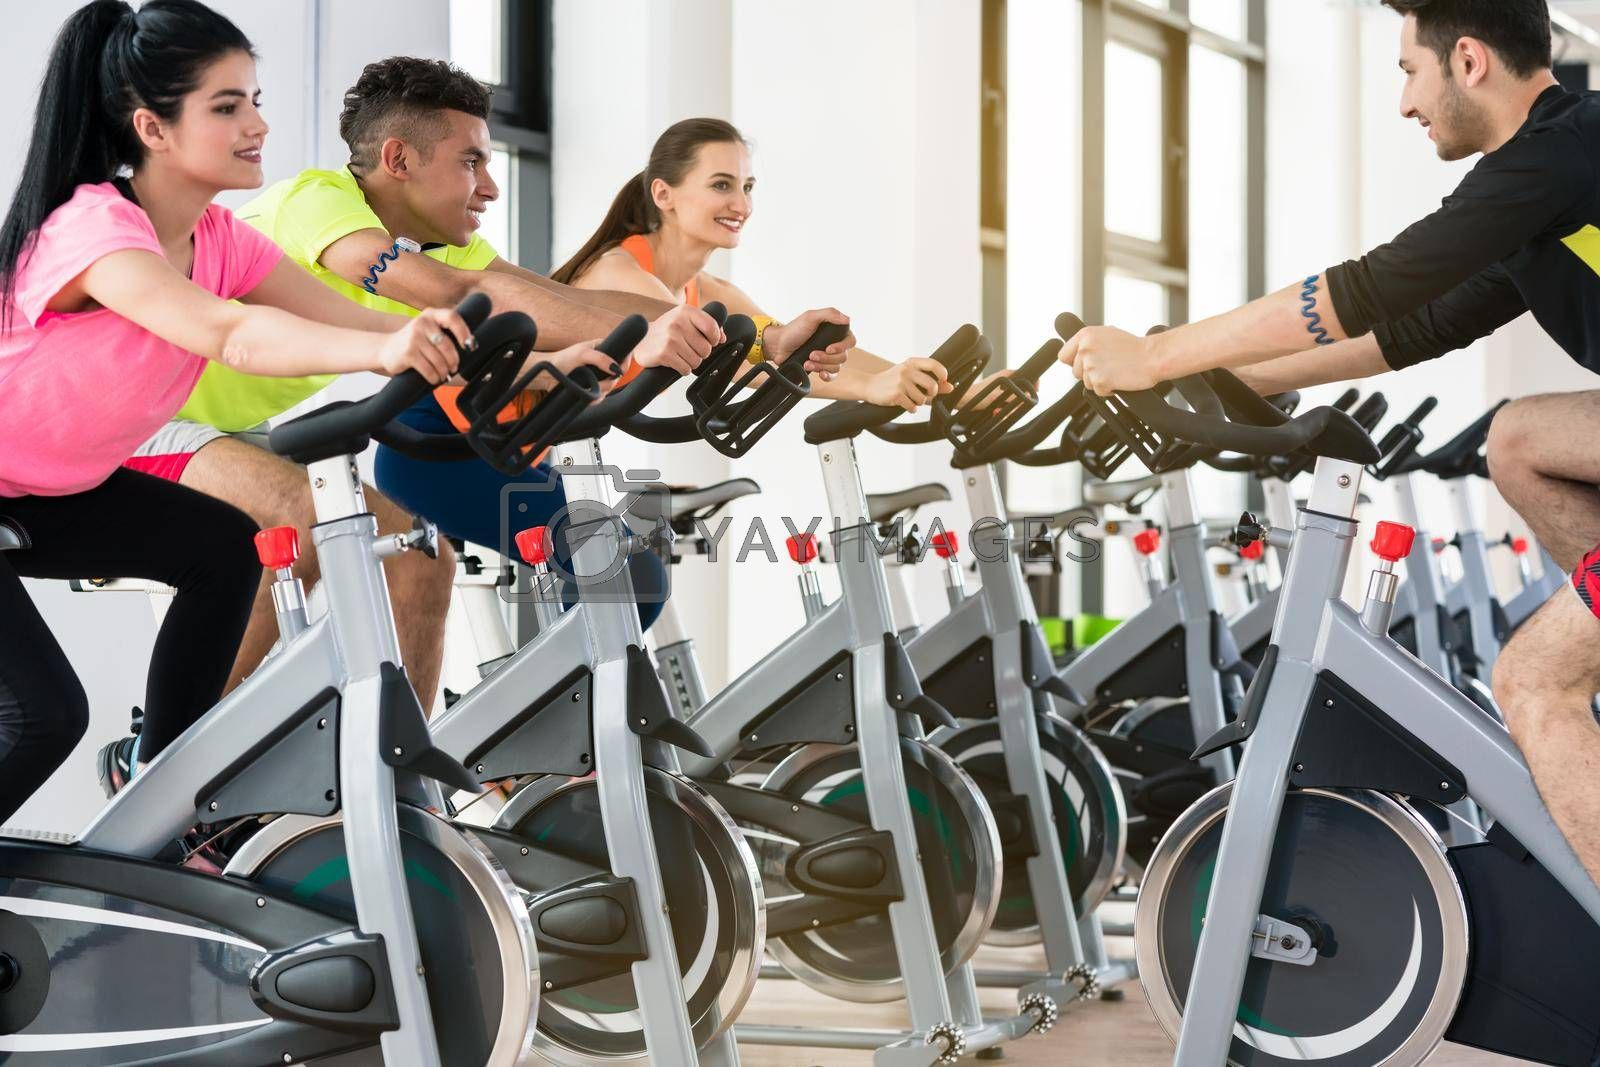 People cycling in row at gym